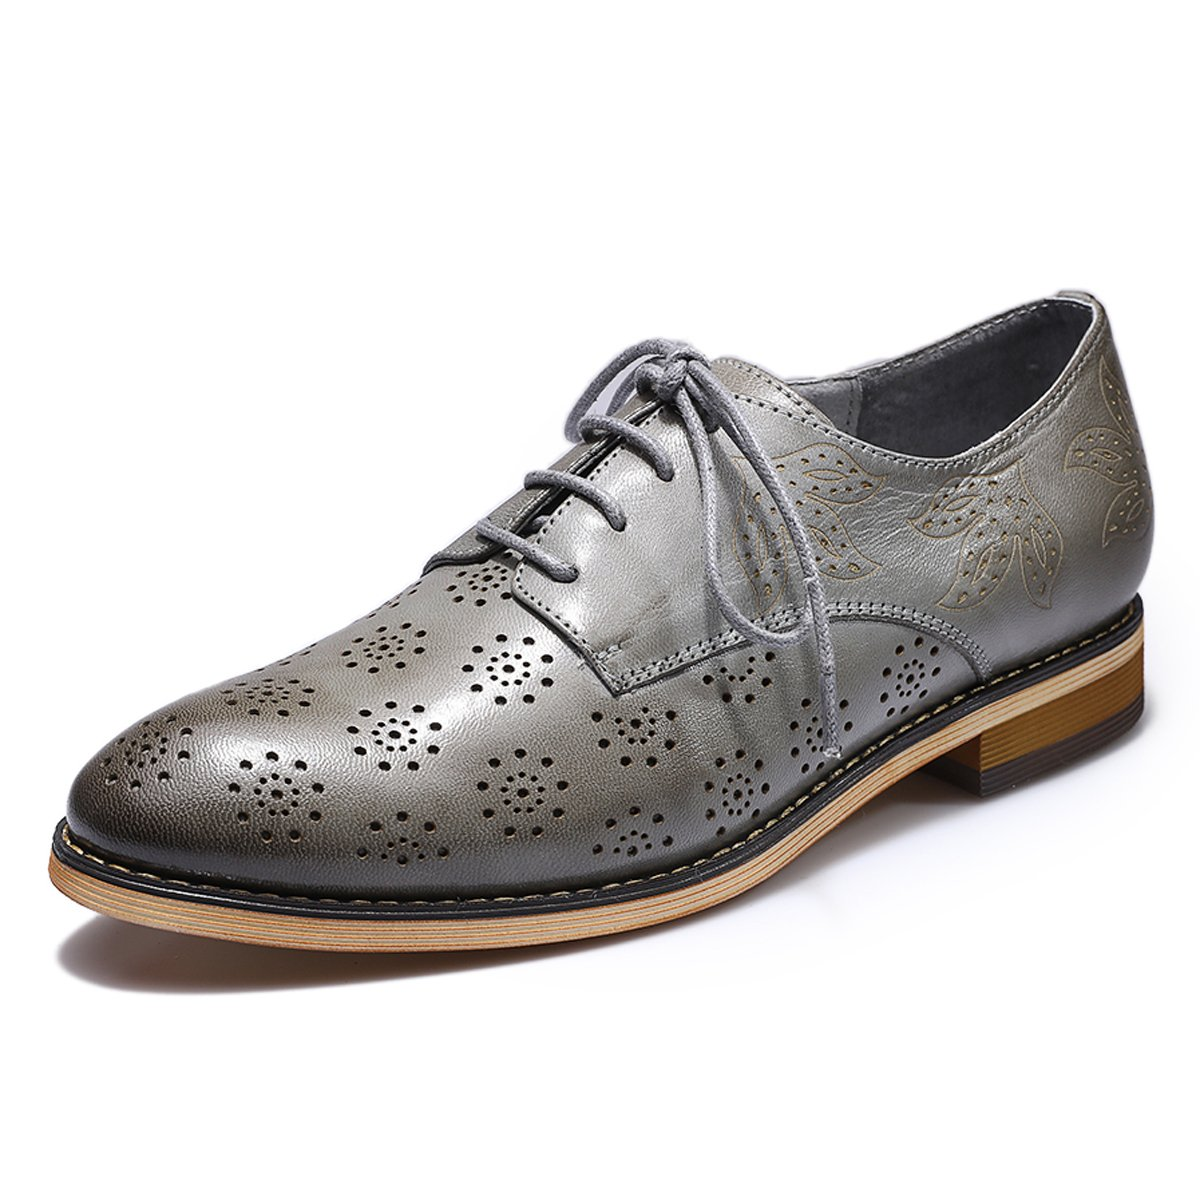 Mona Flying Women's Leather Flat Oxfords Shoes For Women Perforated Lace-up Wingtip Vintage Brogues Shoes,Grey,10 B(M) US by Mona Flying (Image #1)